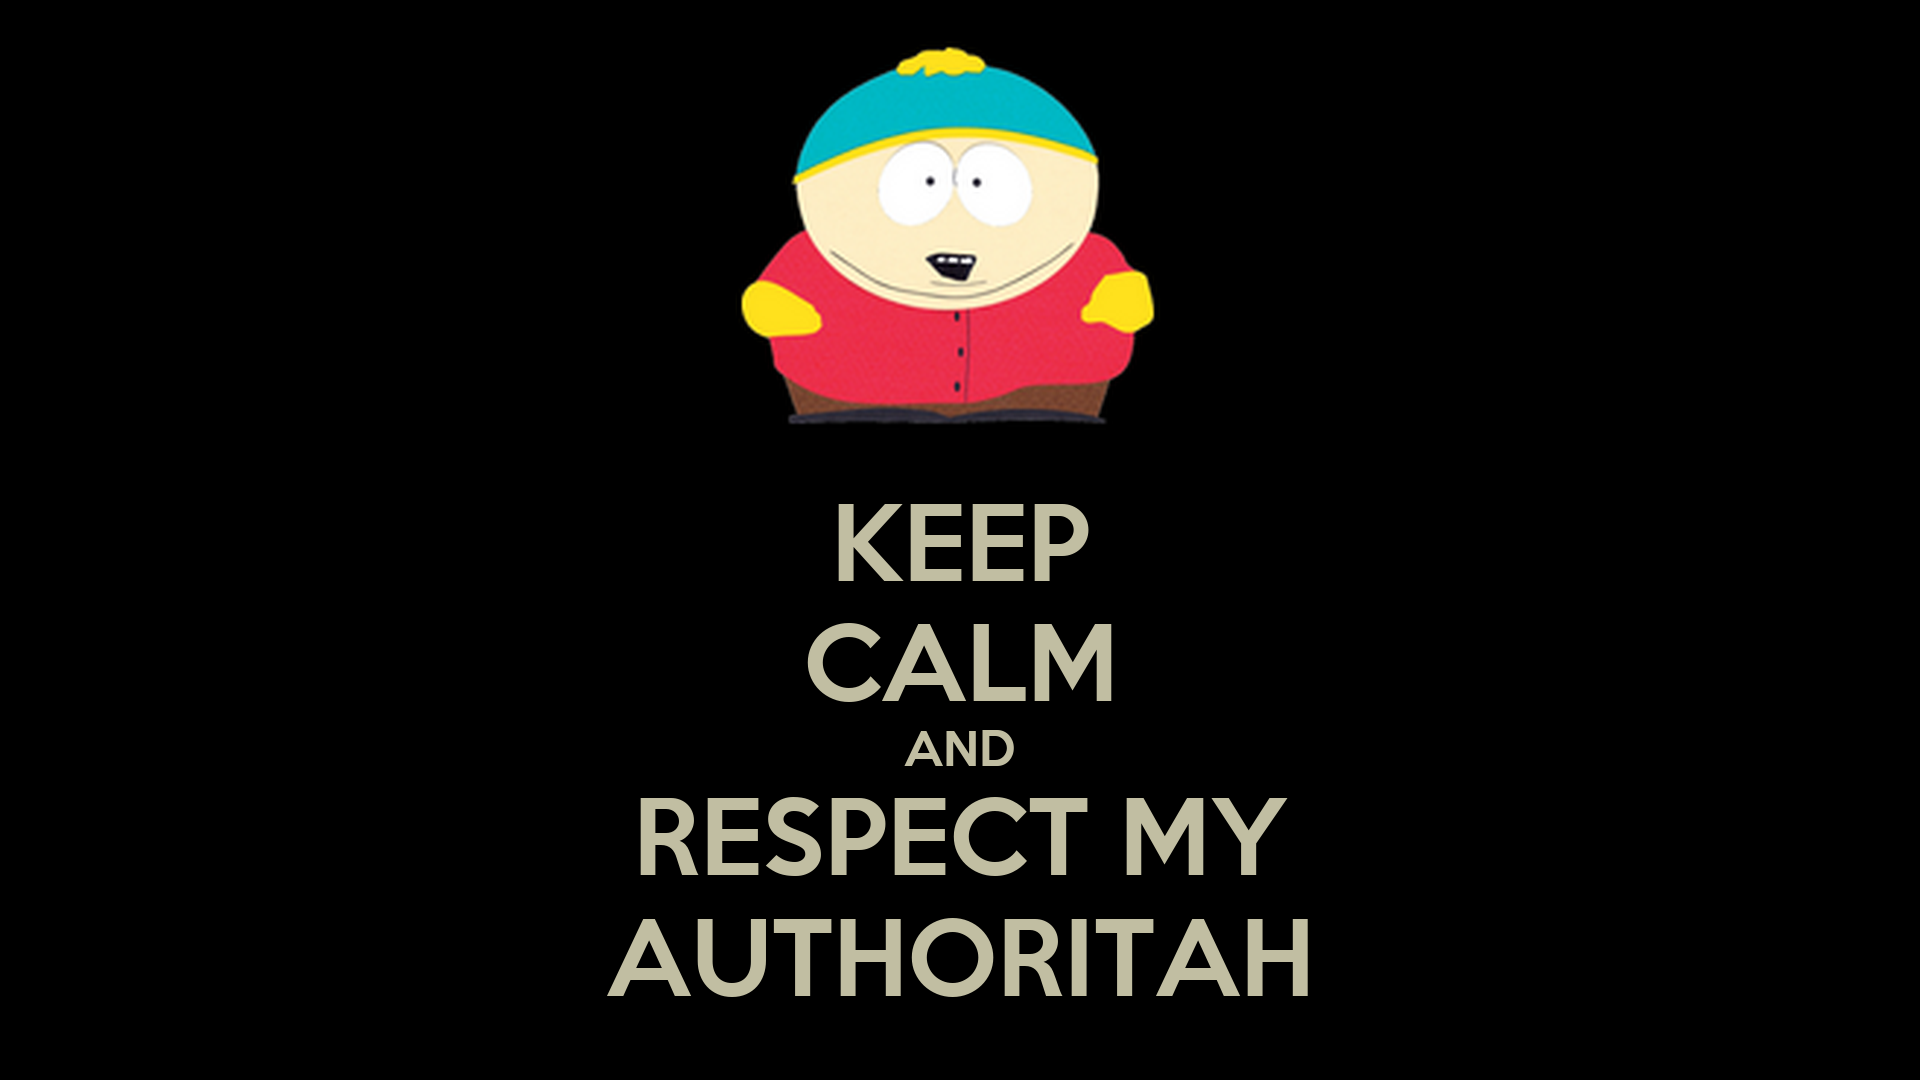 KEEP CALM AND RESPECT MY AUTHORITAH - KEEP CALM AND CARRY ON Image Generator